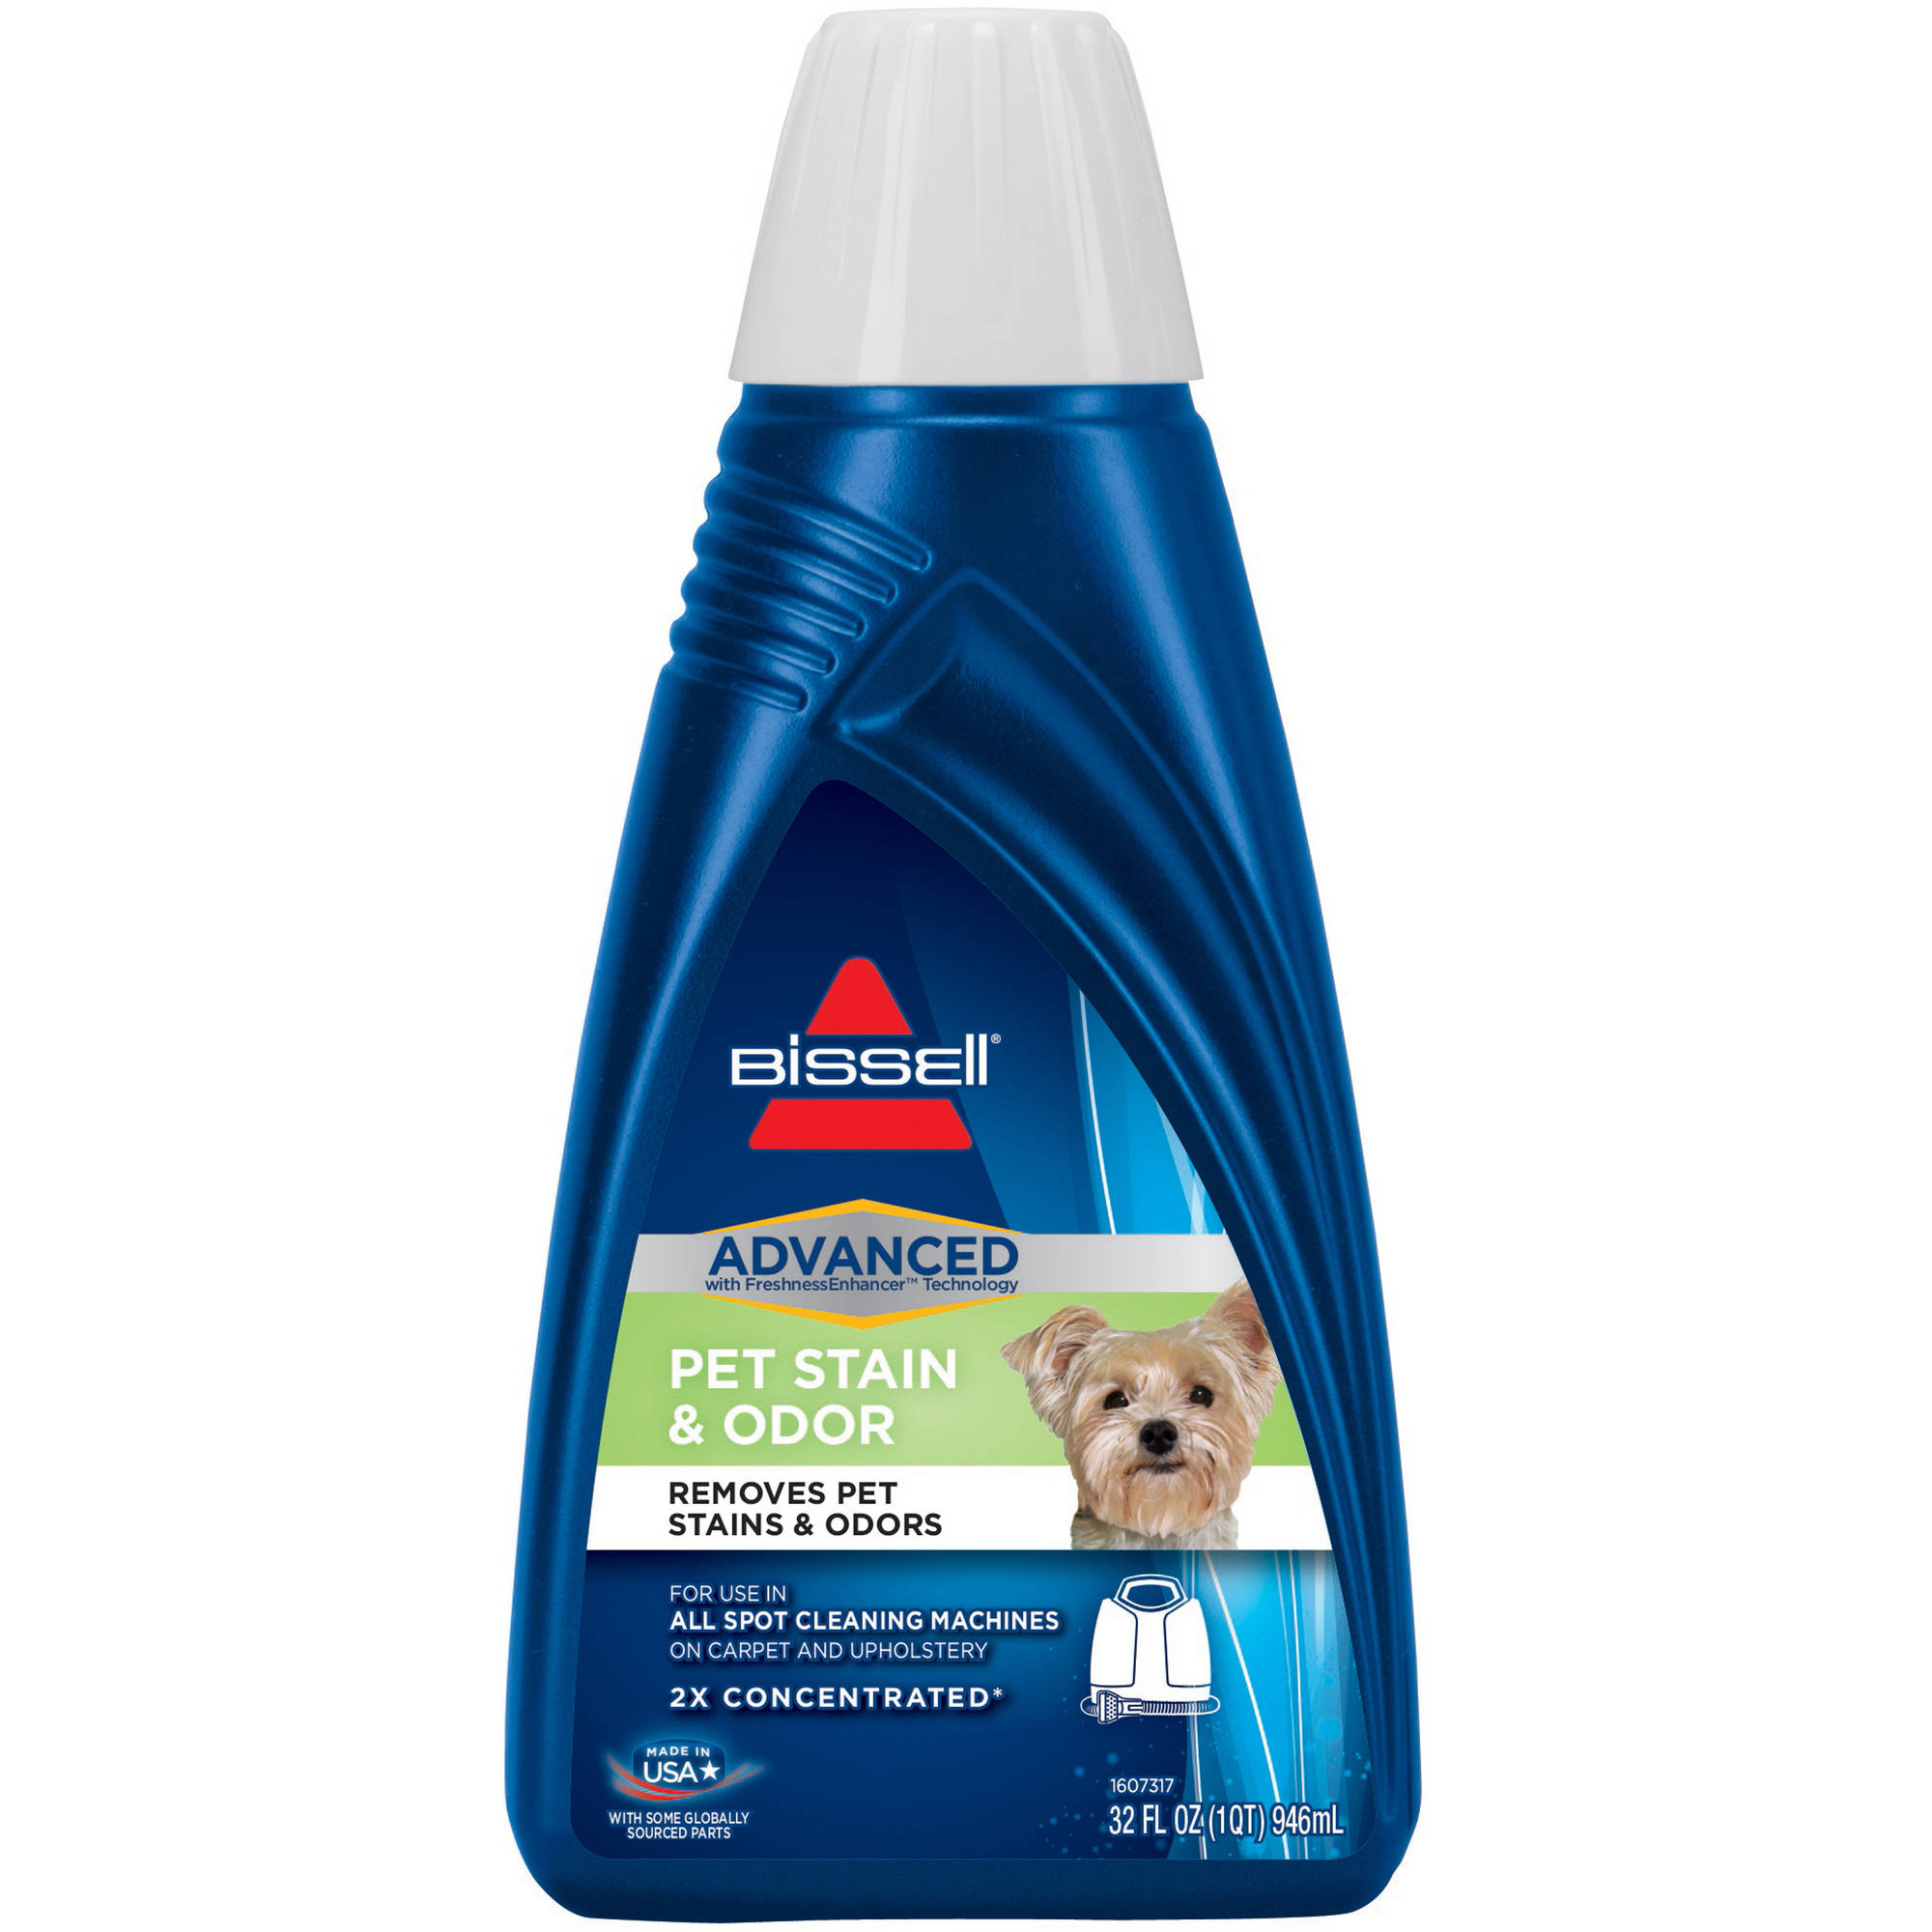 BISSELL Spot Clean Pet Stain and Odor Walmartcom